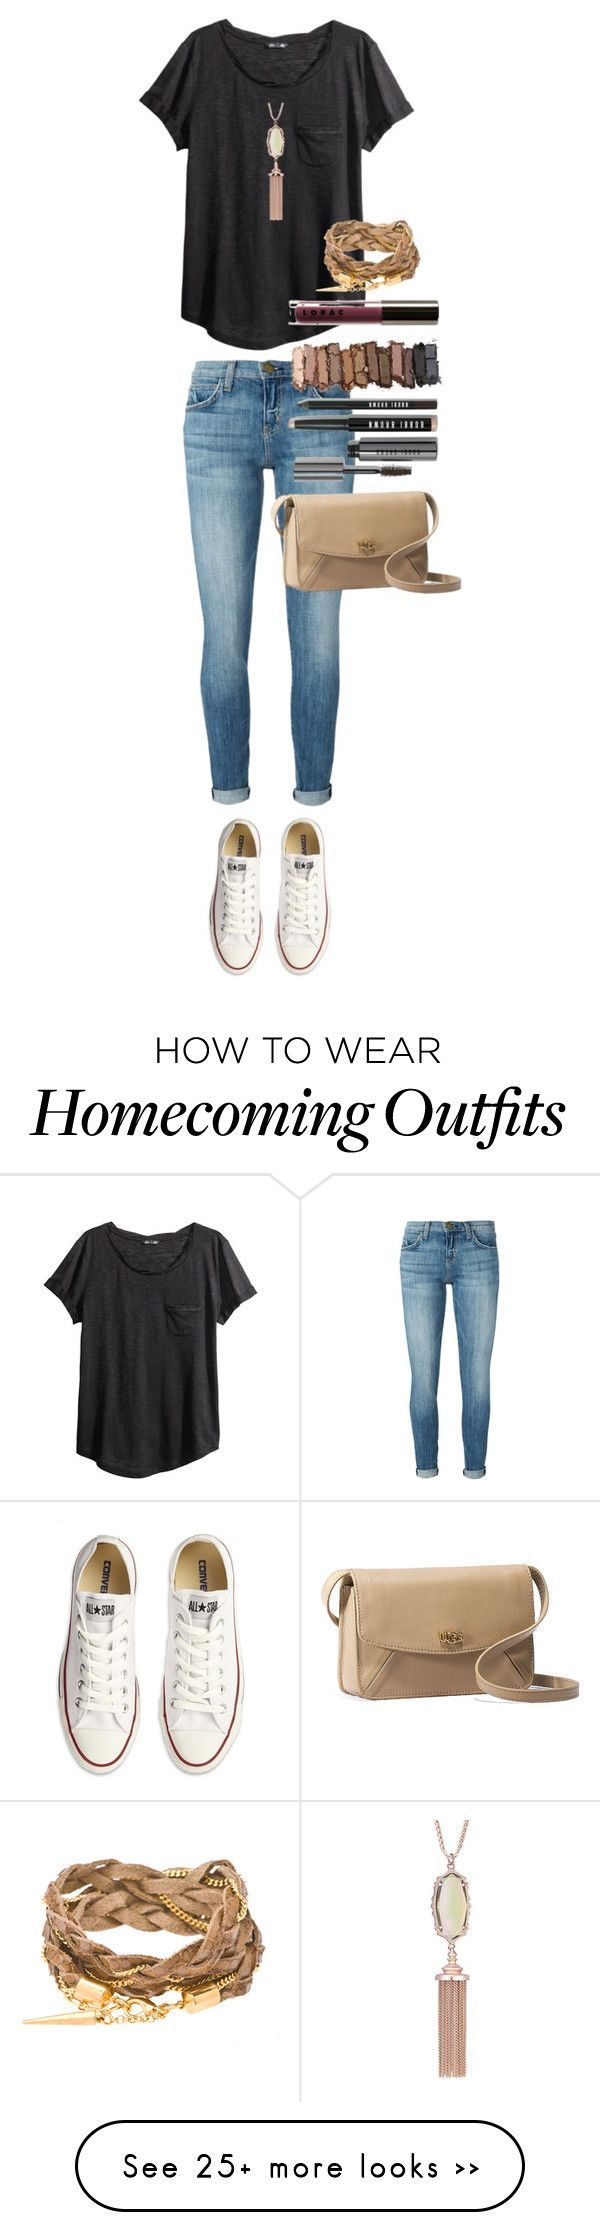 """Homecoming football game Friday"" by absters0 on Polyvore featuring Current/Elliott, Converse, H&M, UGG Australia, Bobbi Brown Cosmetics, Urban Decay, LORAC and Kendra Scott"